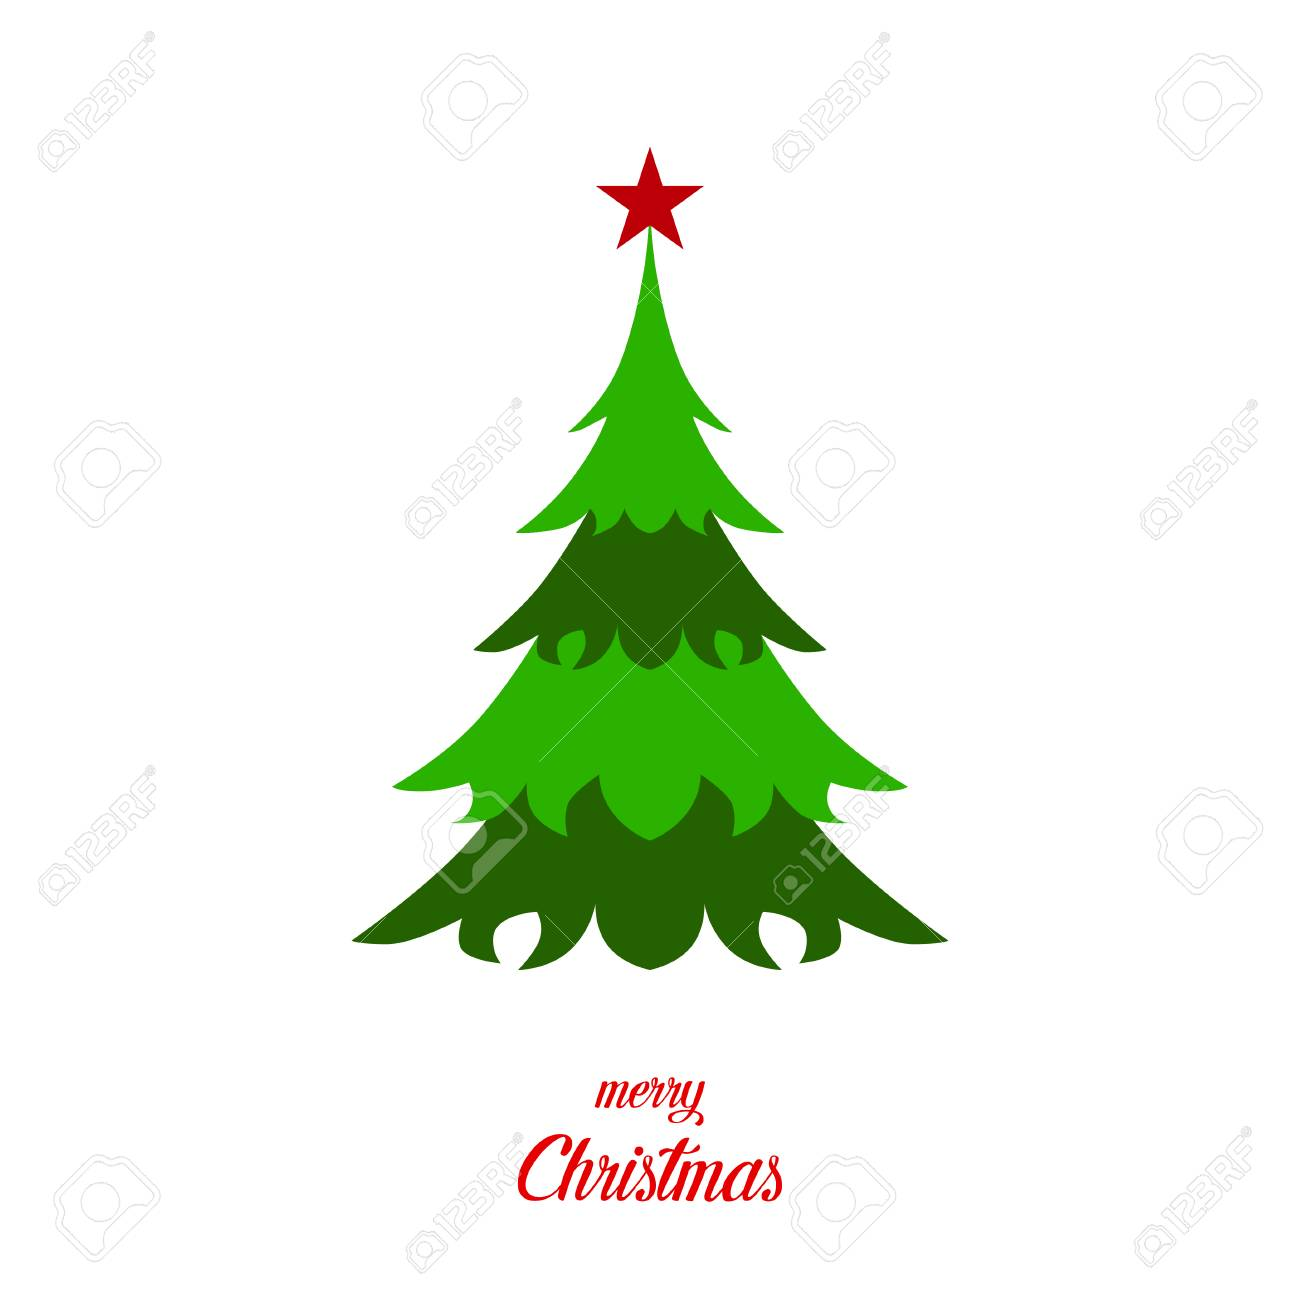 Green Christmas Tree With Star And Text Merry Christmas On Blank